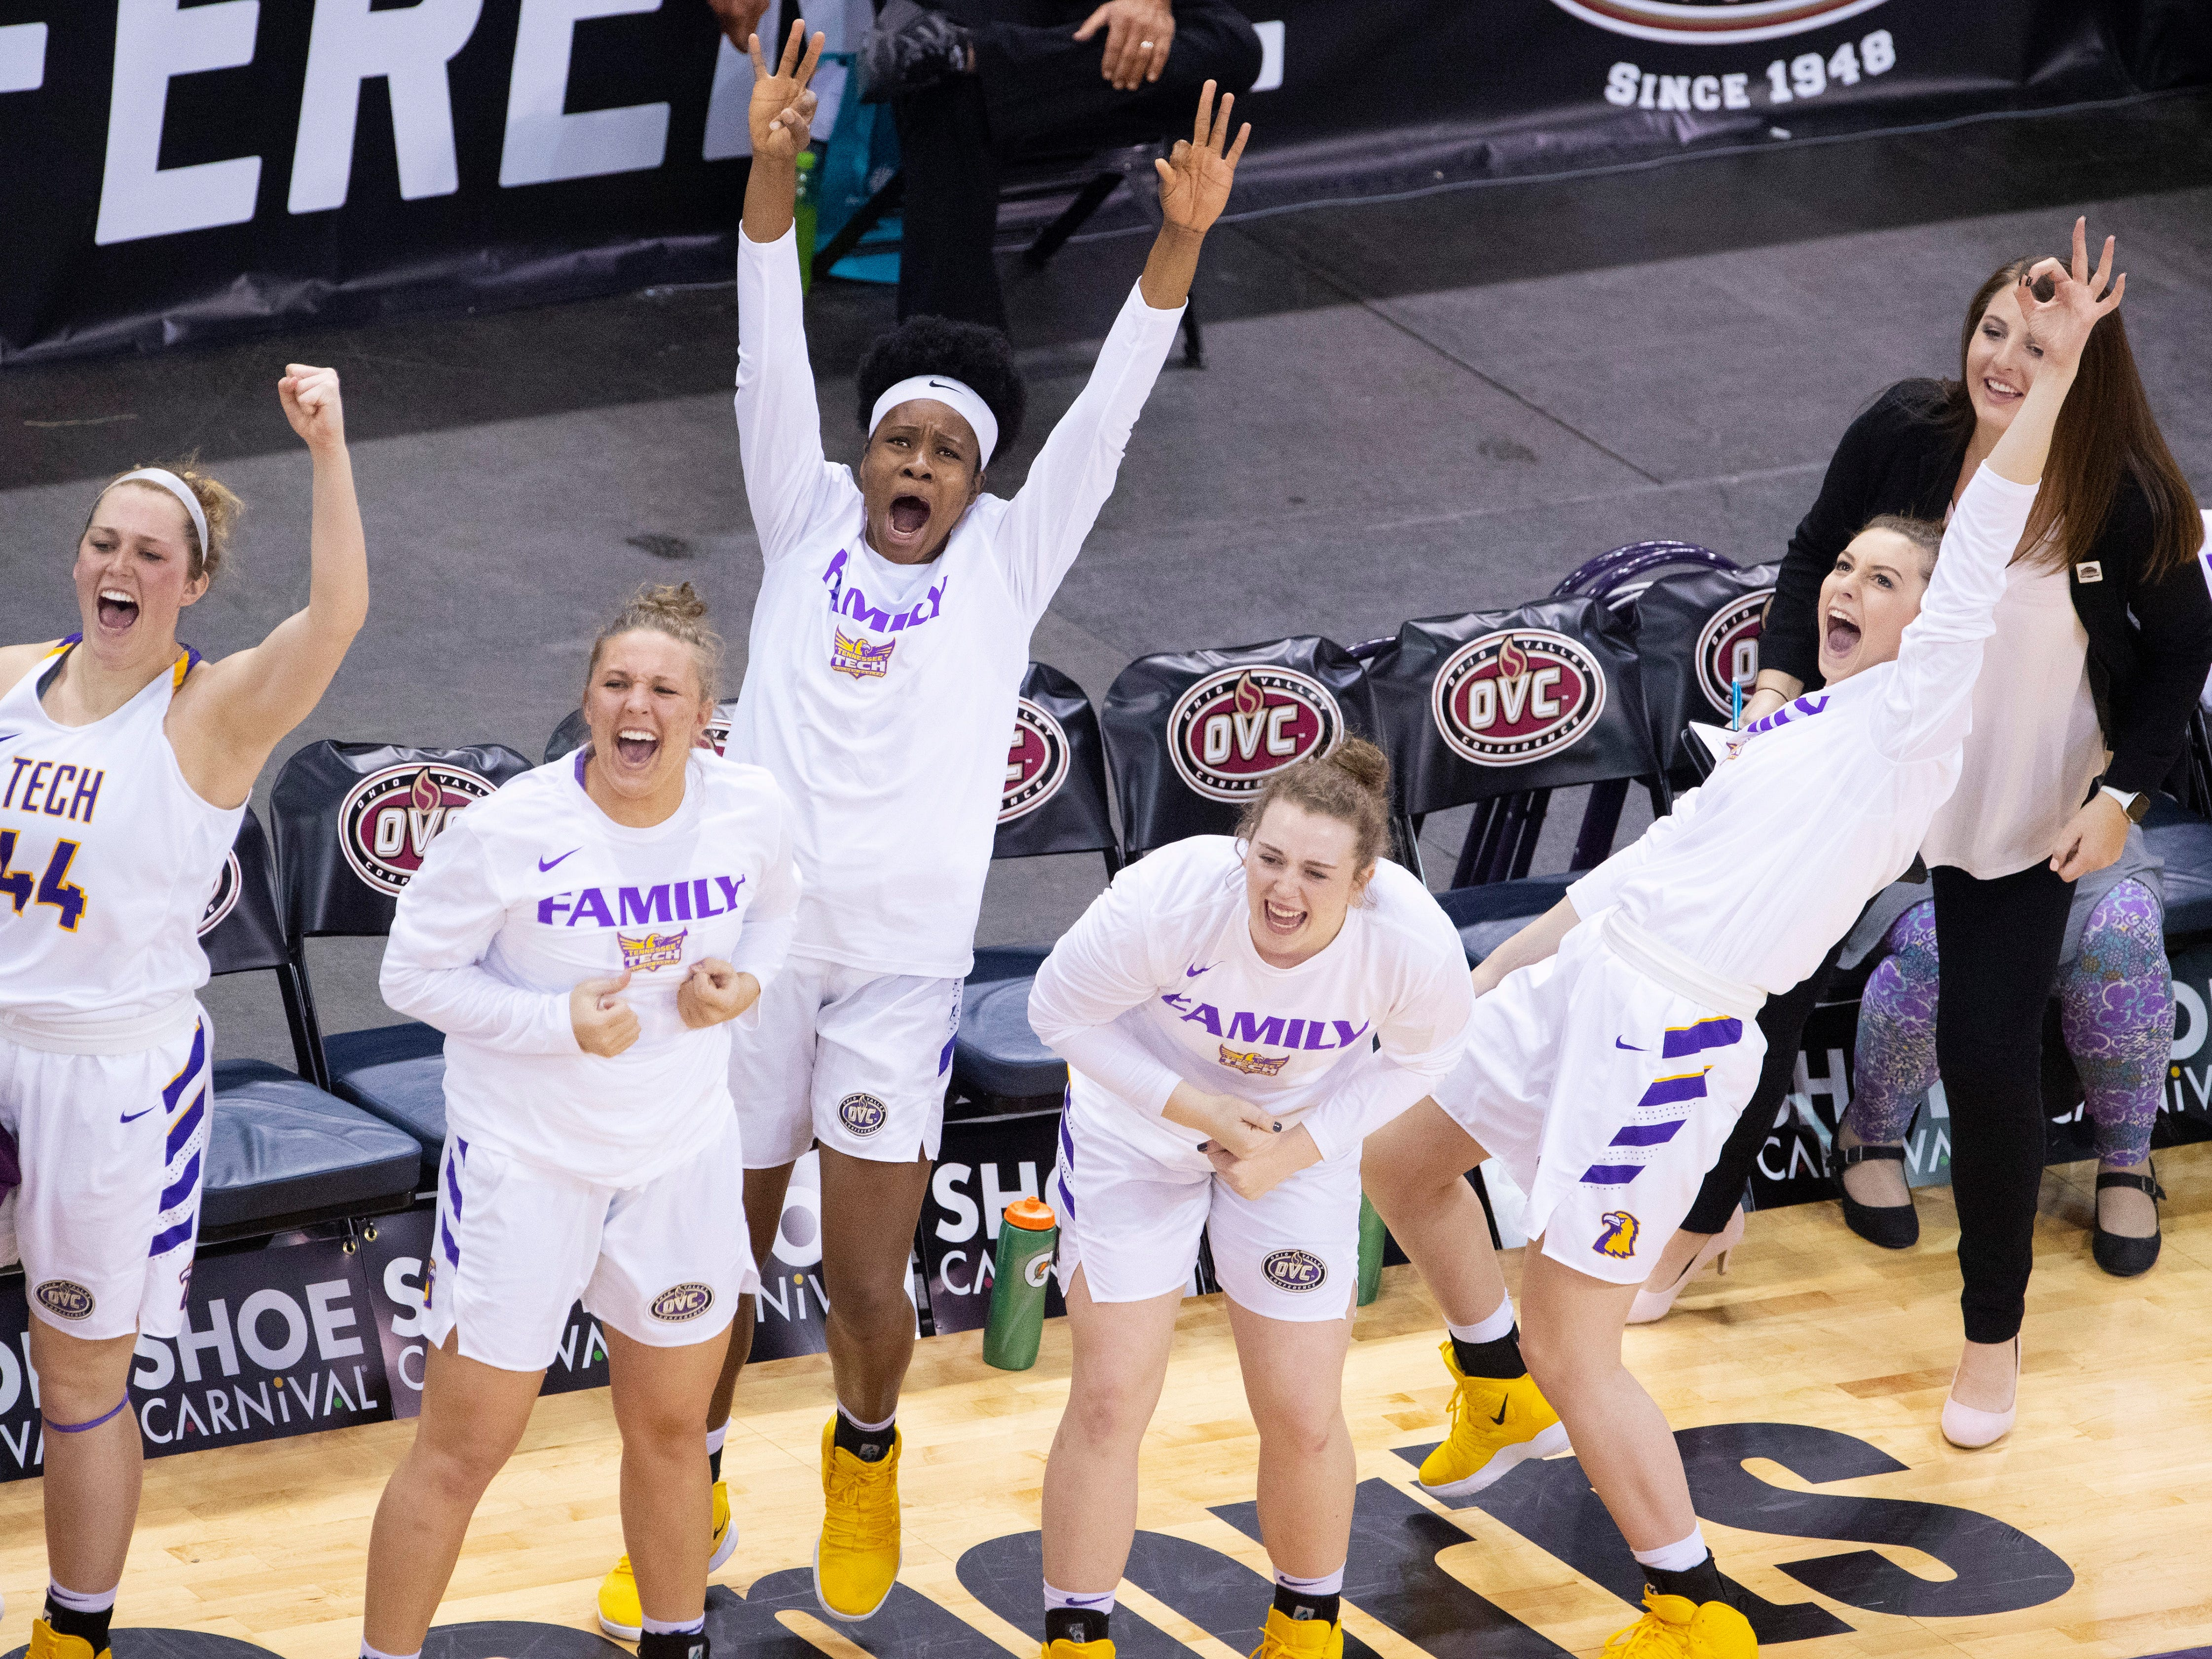 Tennessee Tech's bench erupts after scoring a three-pointer against Austin Peay during their quarterfinal game of the Ohio Valley Conference Women's Basketball Championship at the Ford Center Thursday afternoon. Tennessee Tech came out on top and advanced to Friday's semifinal game.